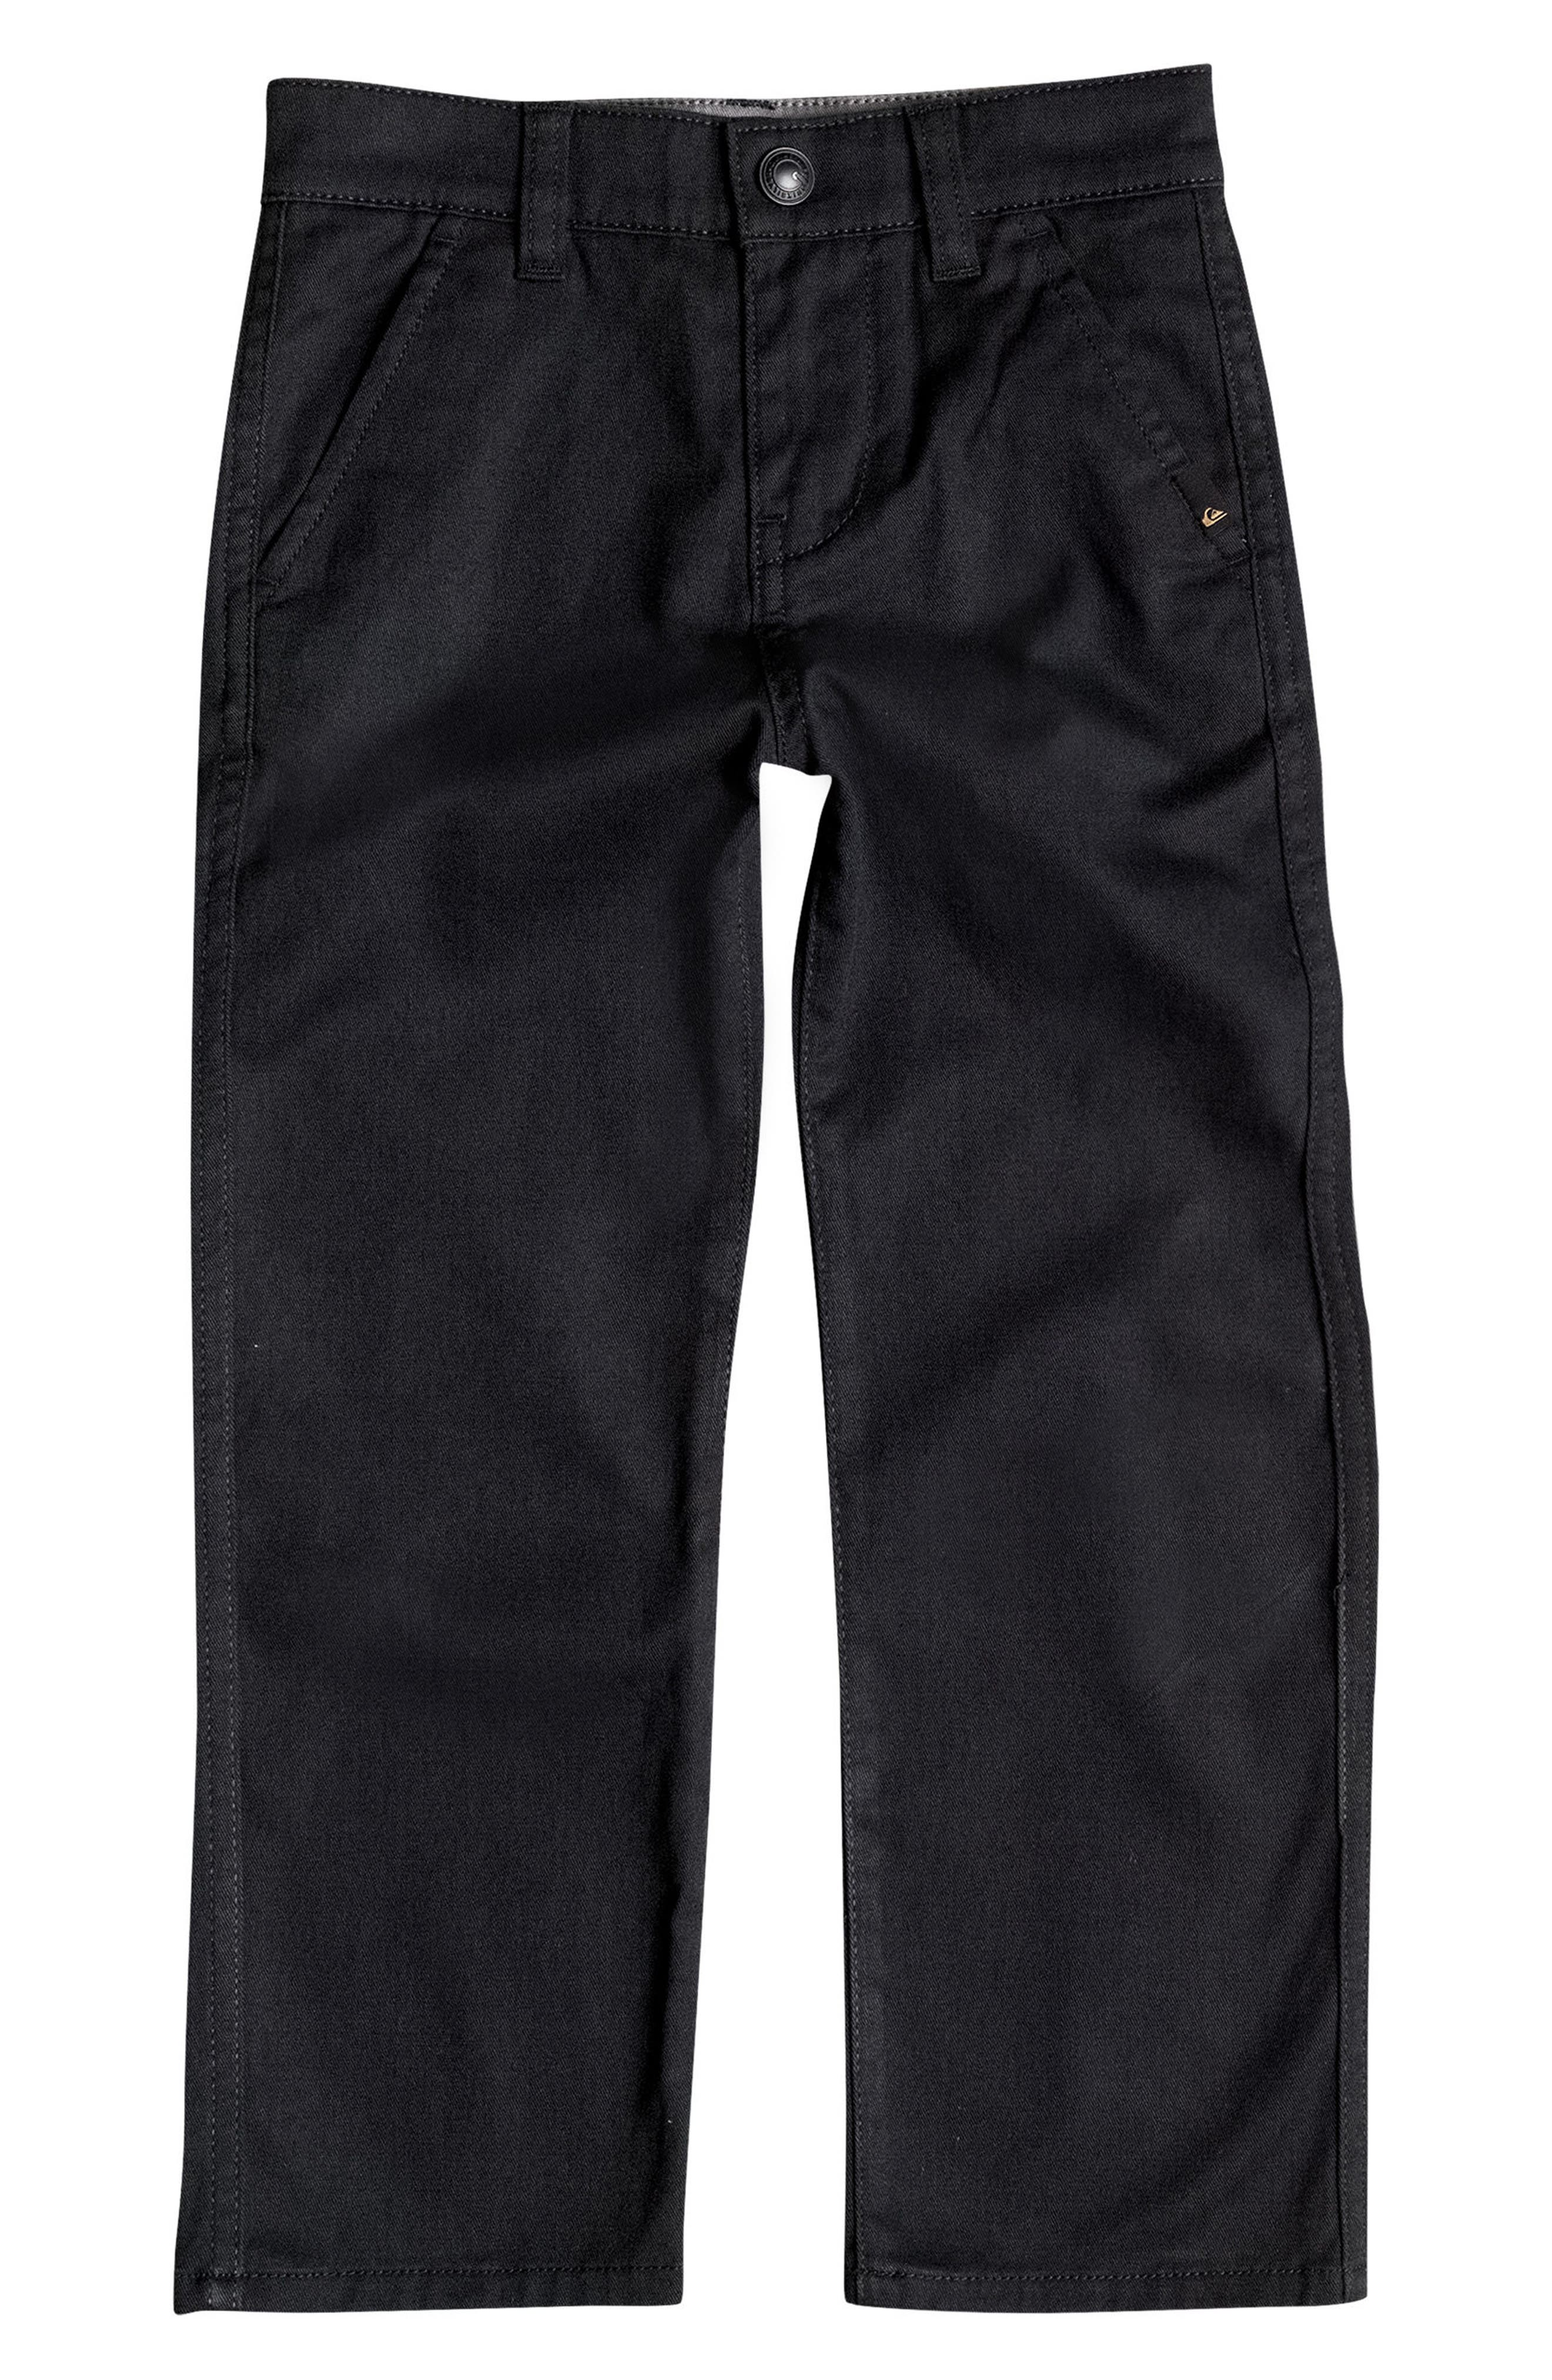 Everyday Union Pants,                         Main,                         color, 002